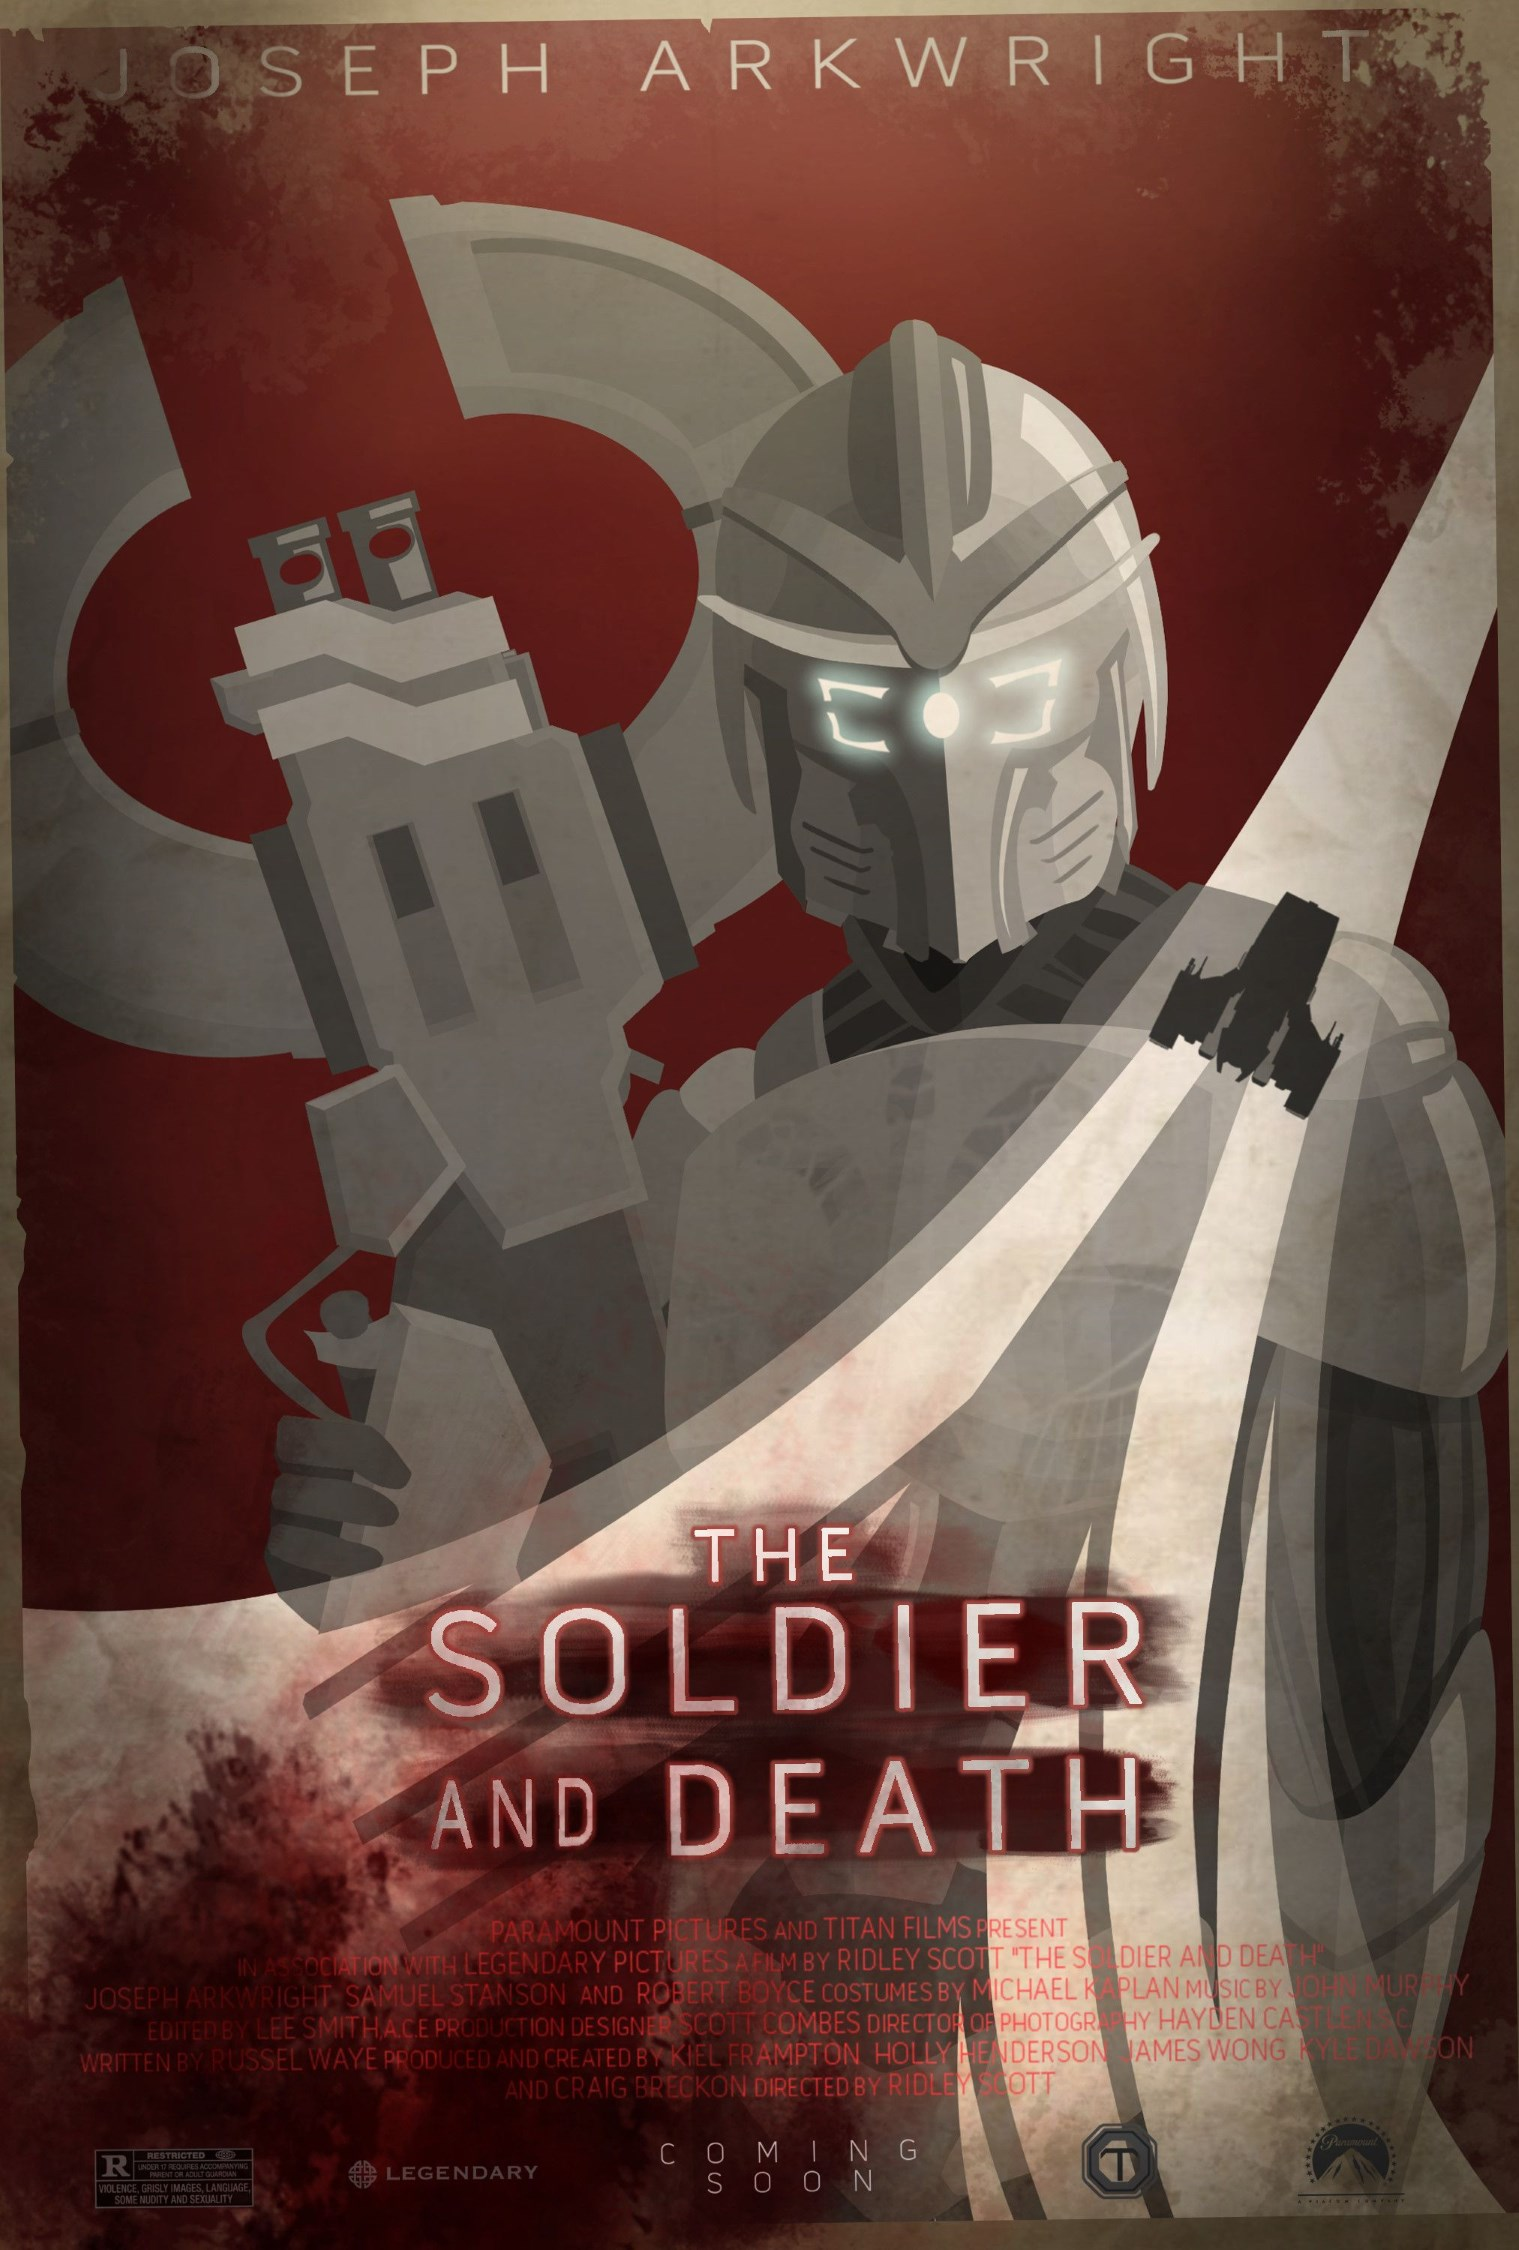 Soldier and Death: Poster